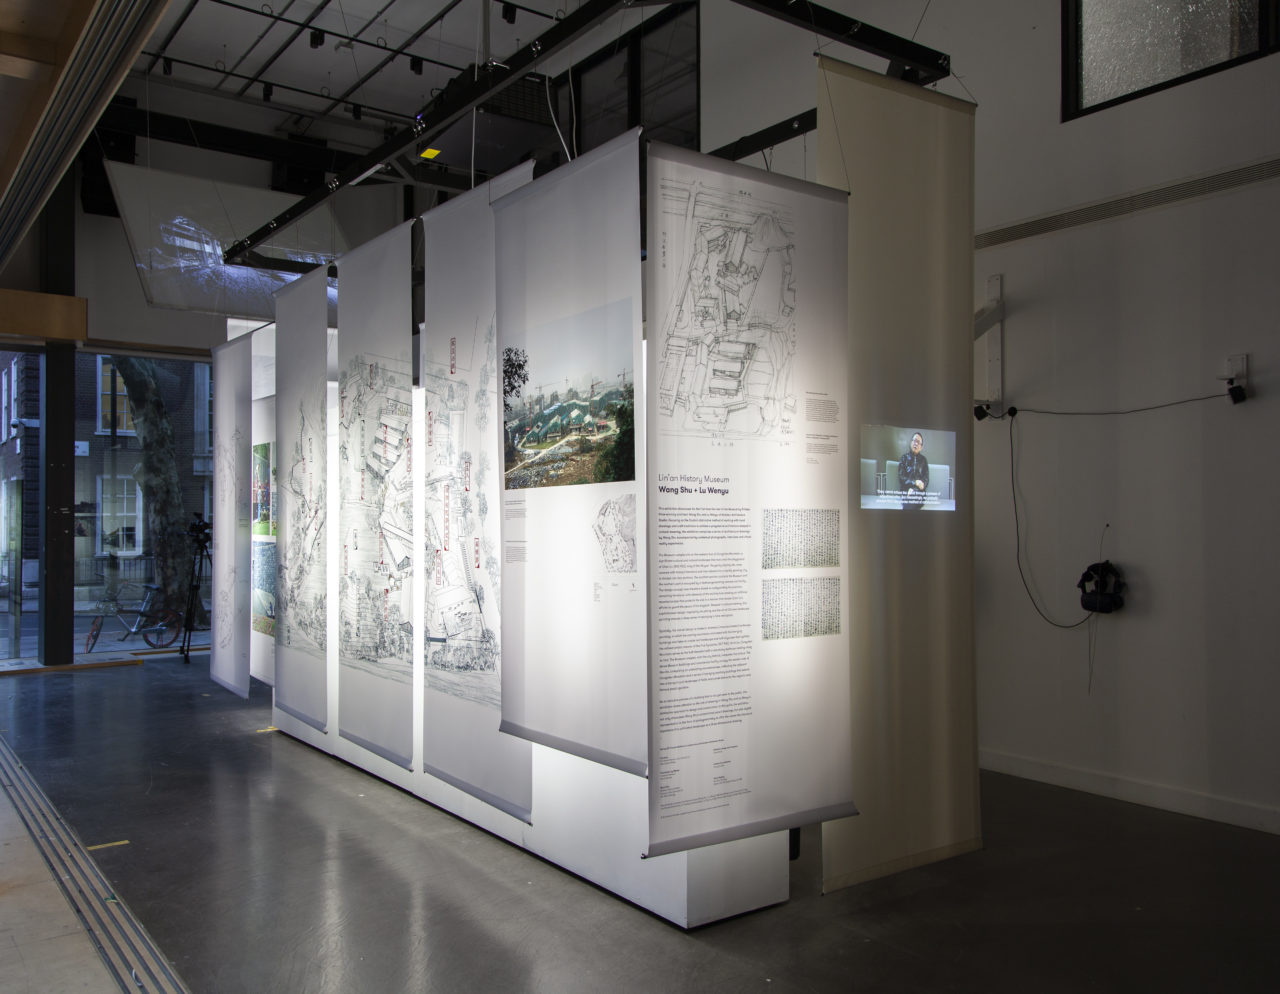 Exhibition Design: Chee-Kit Lai Curators: Dr Edward Denison + Chee-Kit Lai (with Patrick Weber)